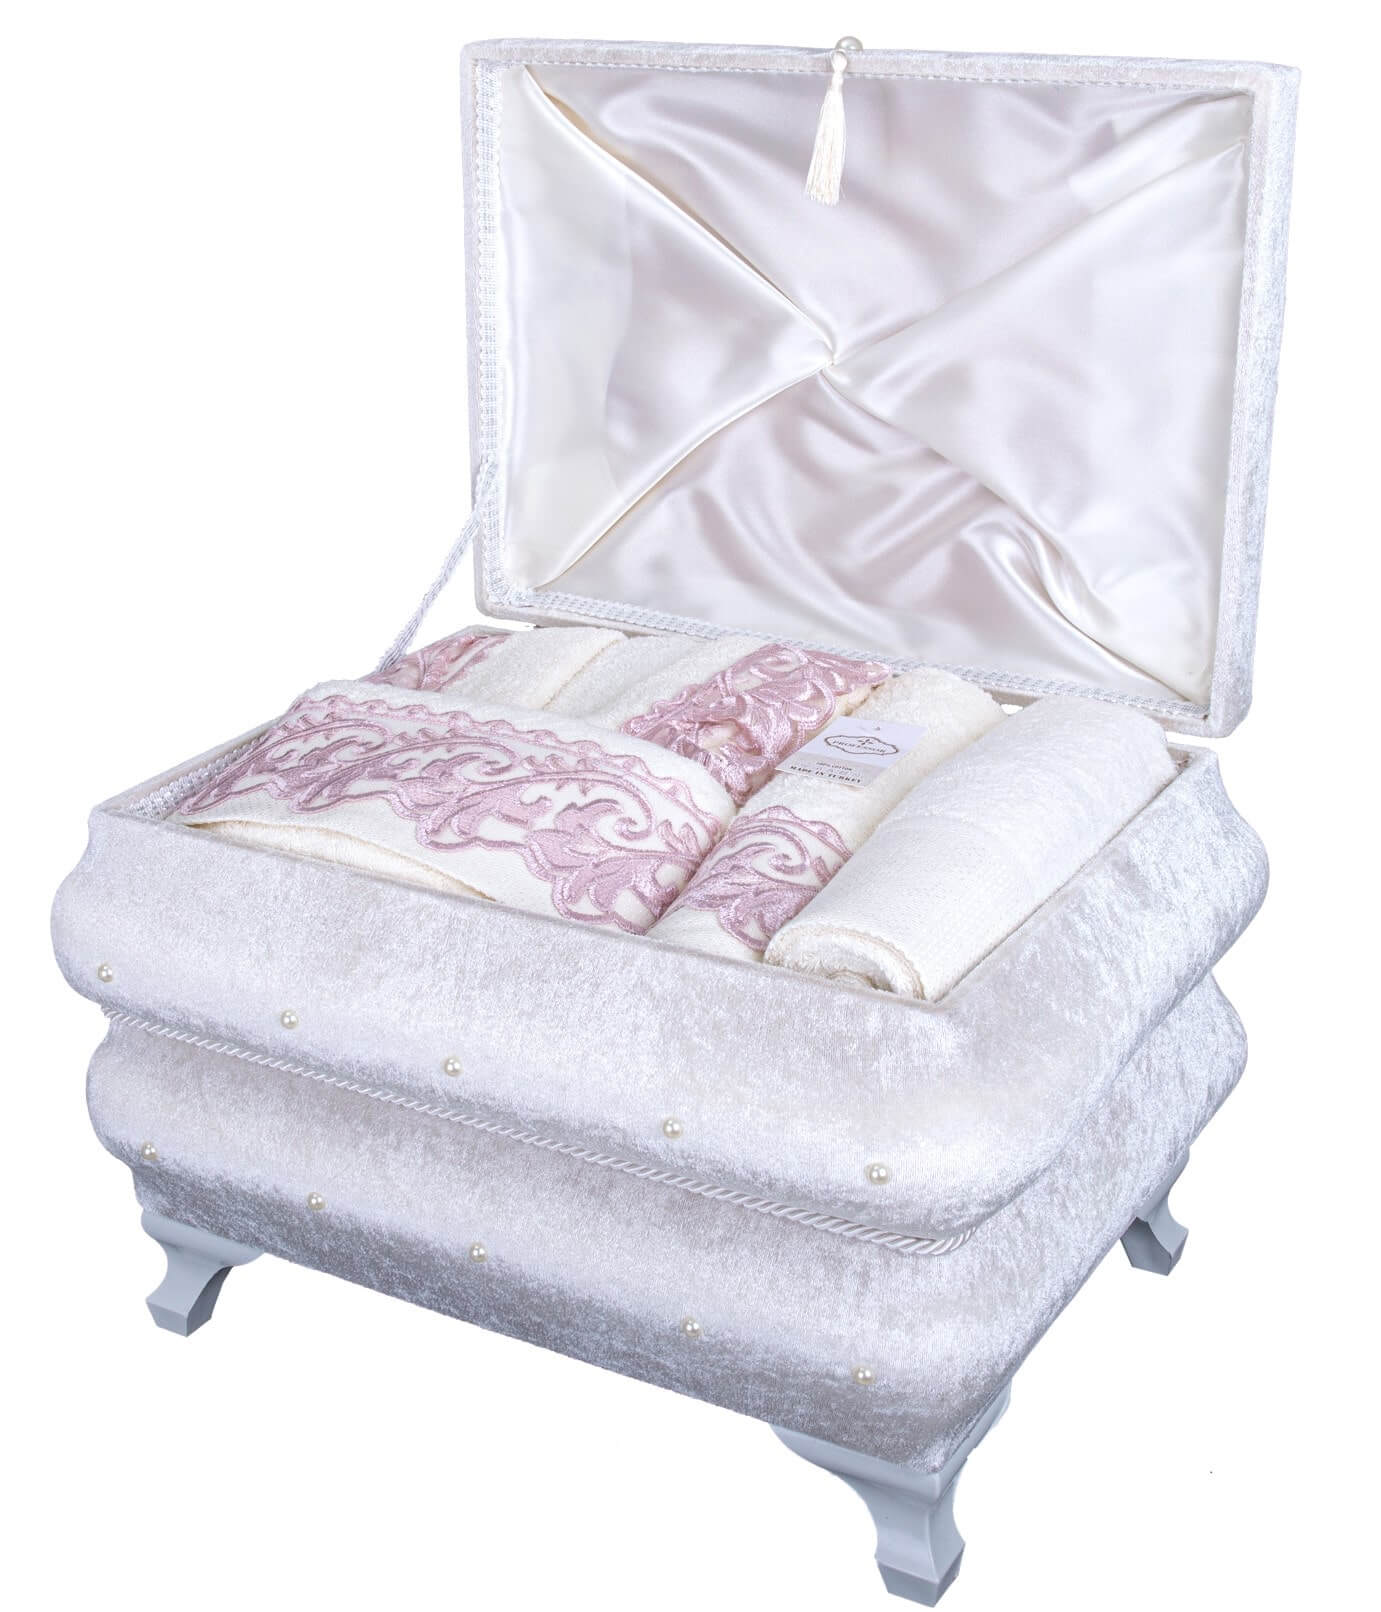 BATH ROBE 12PC SET BOX